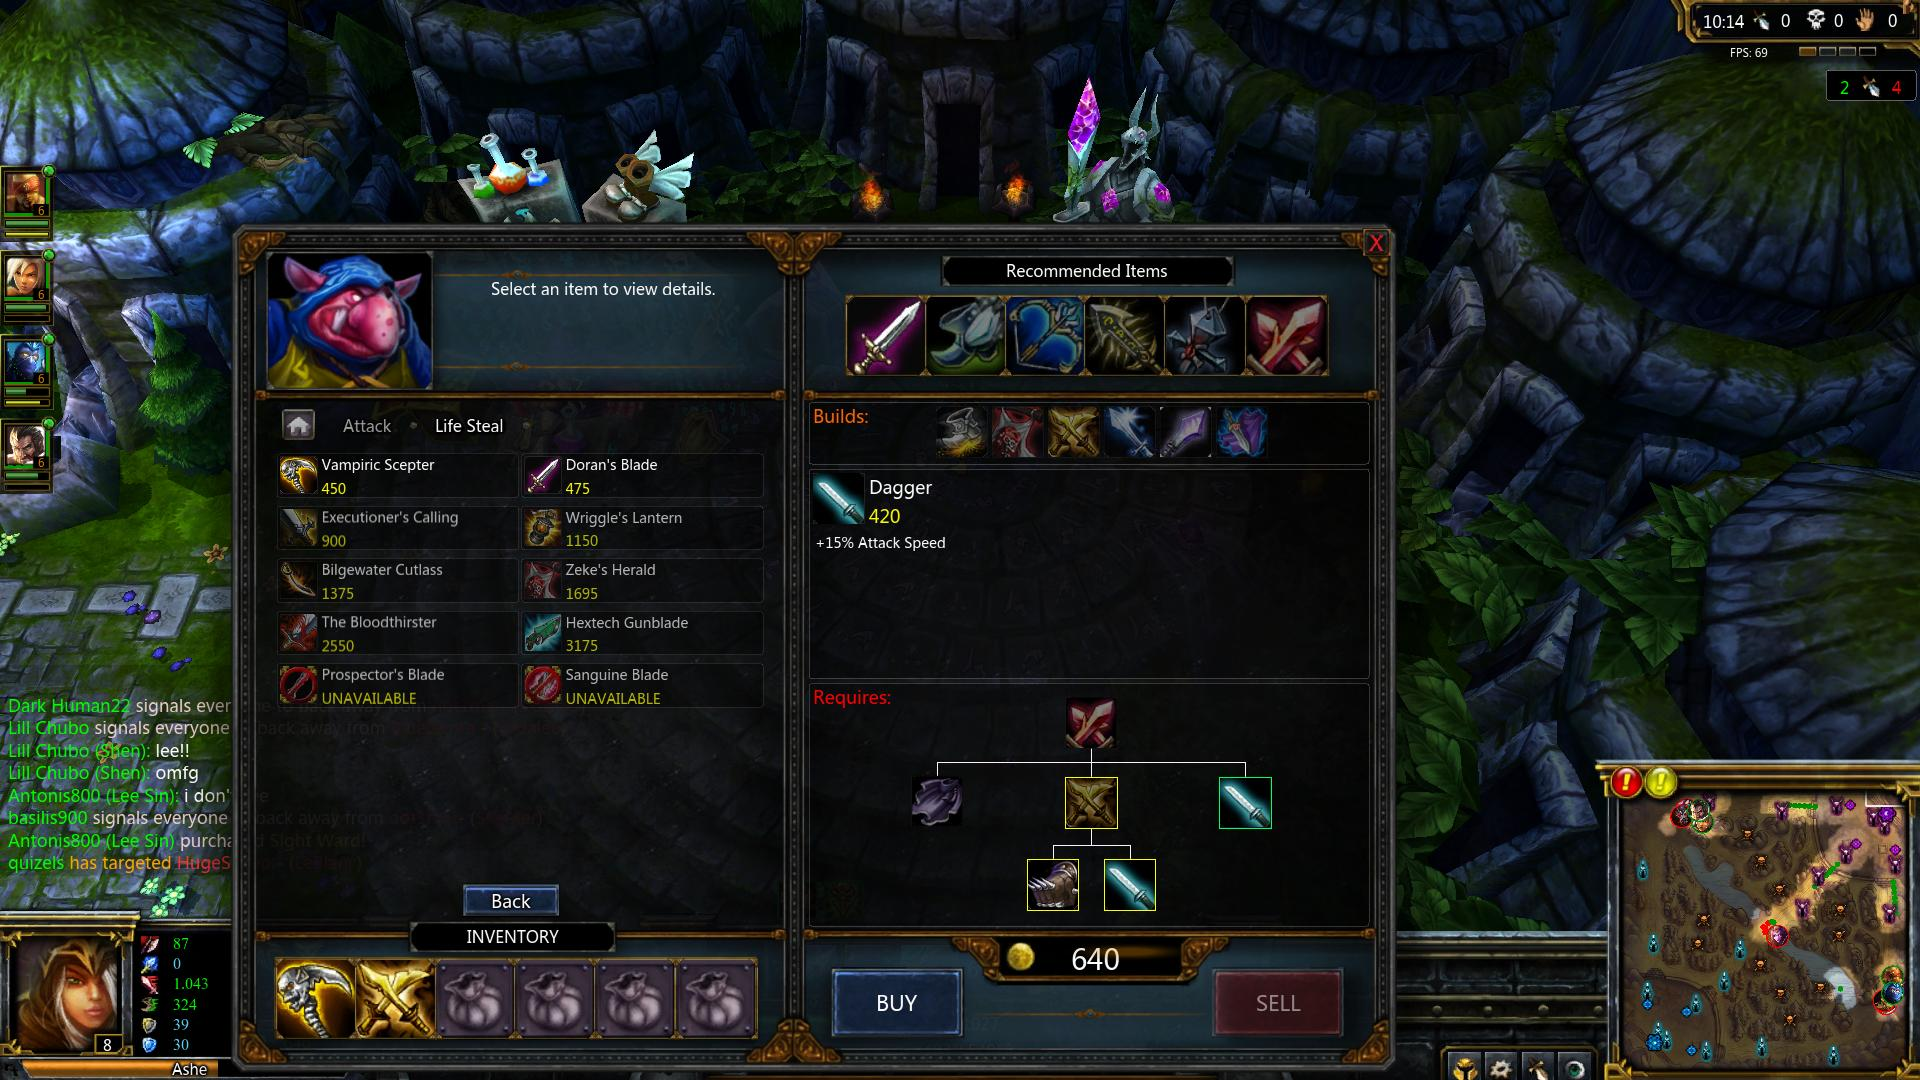 League of Legends Recommended Items lol screenshot